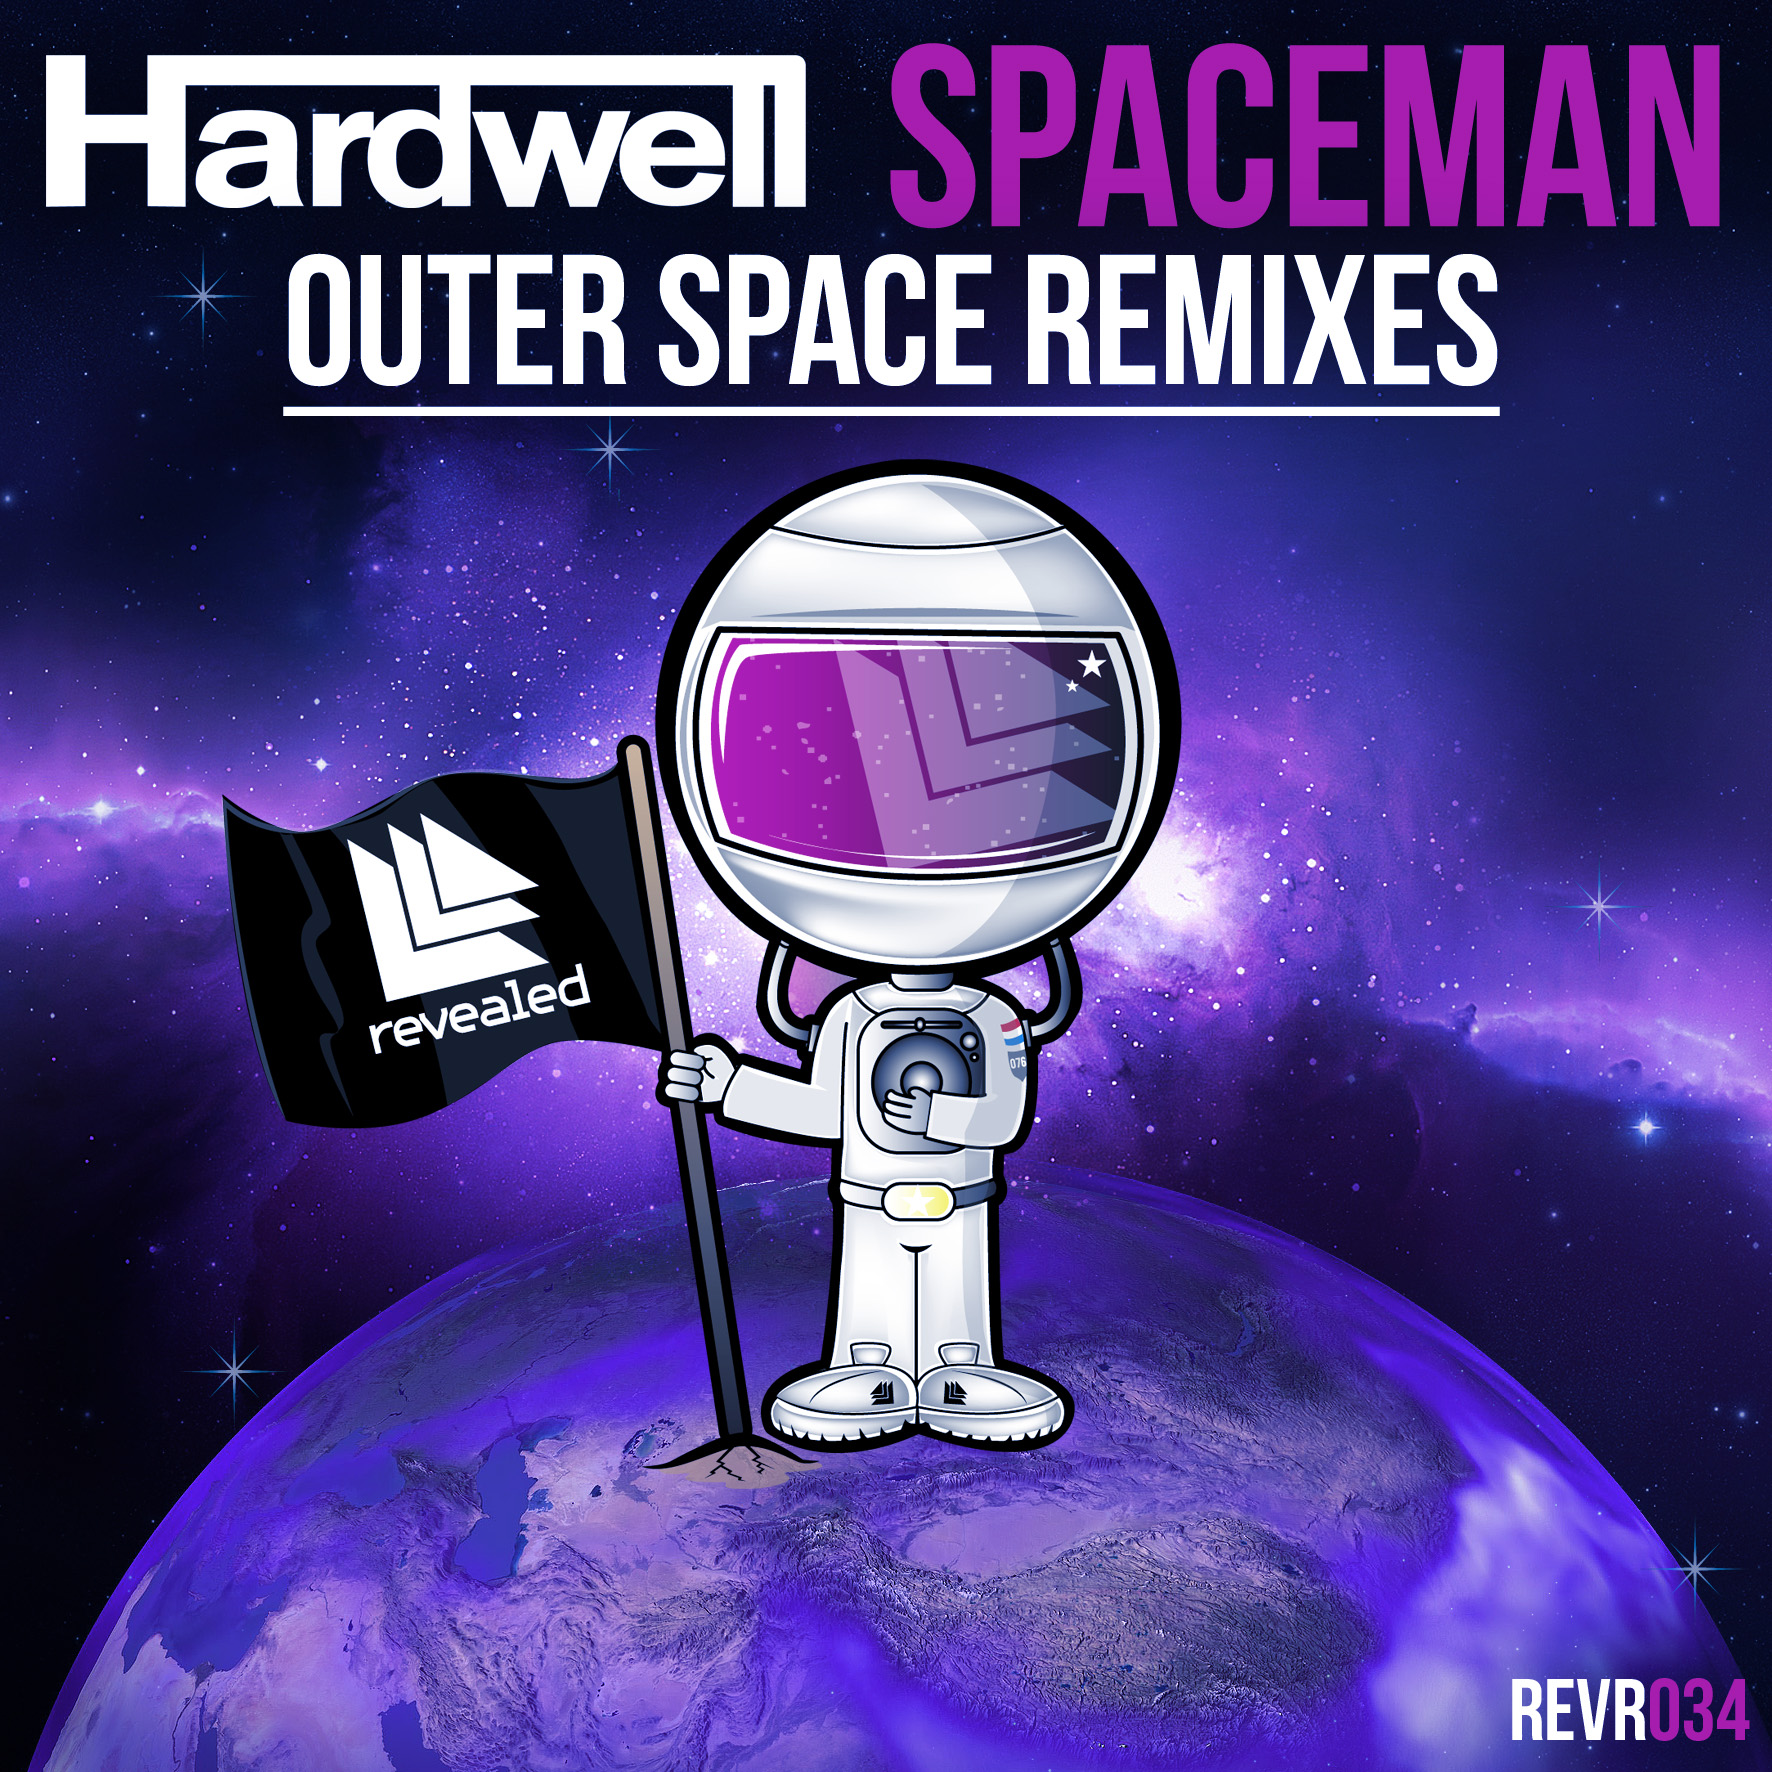 Hardwell spaceman outer space remixes preview for Jobs in outer space